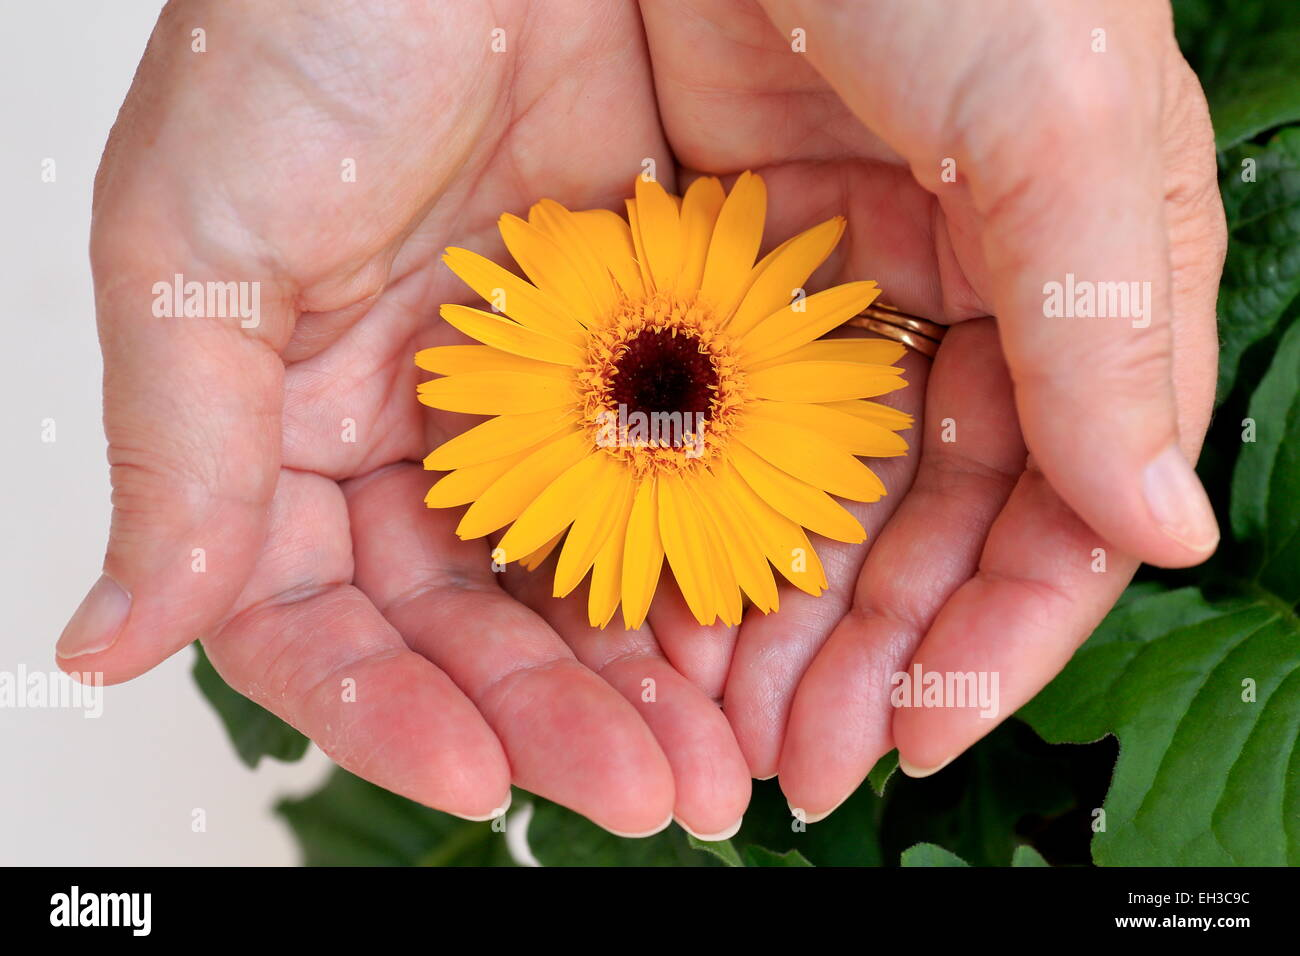 hands cupping stock photos